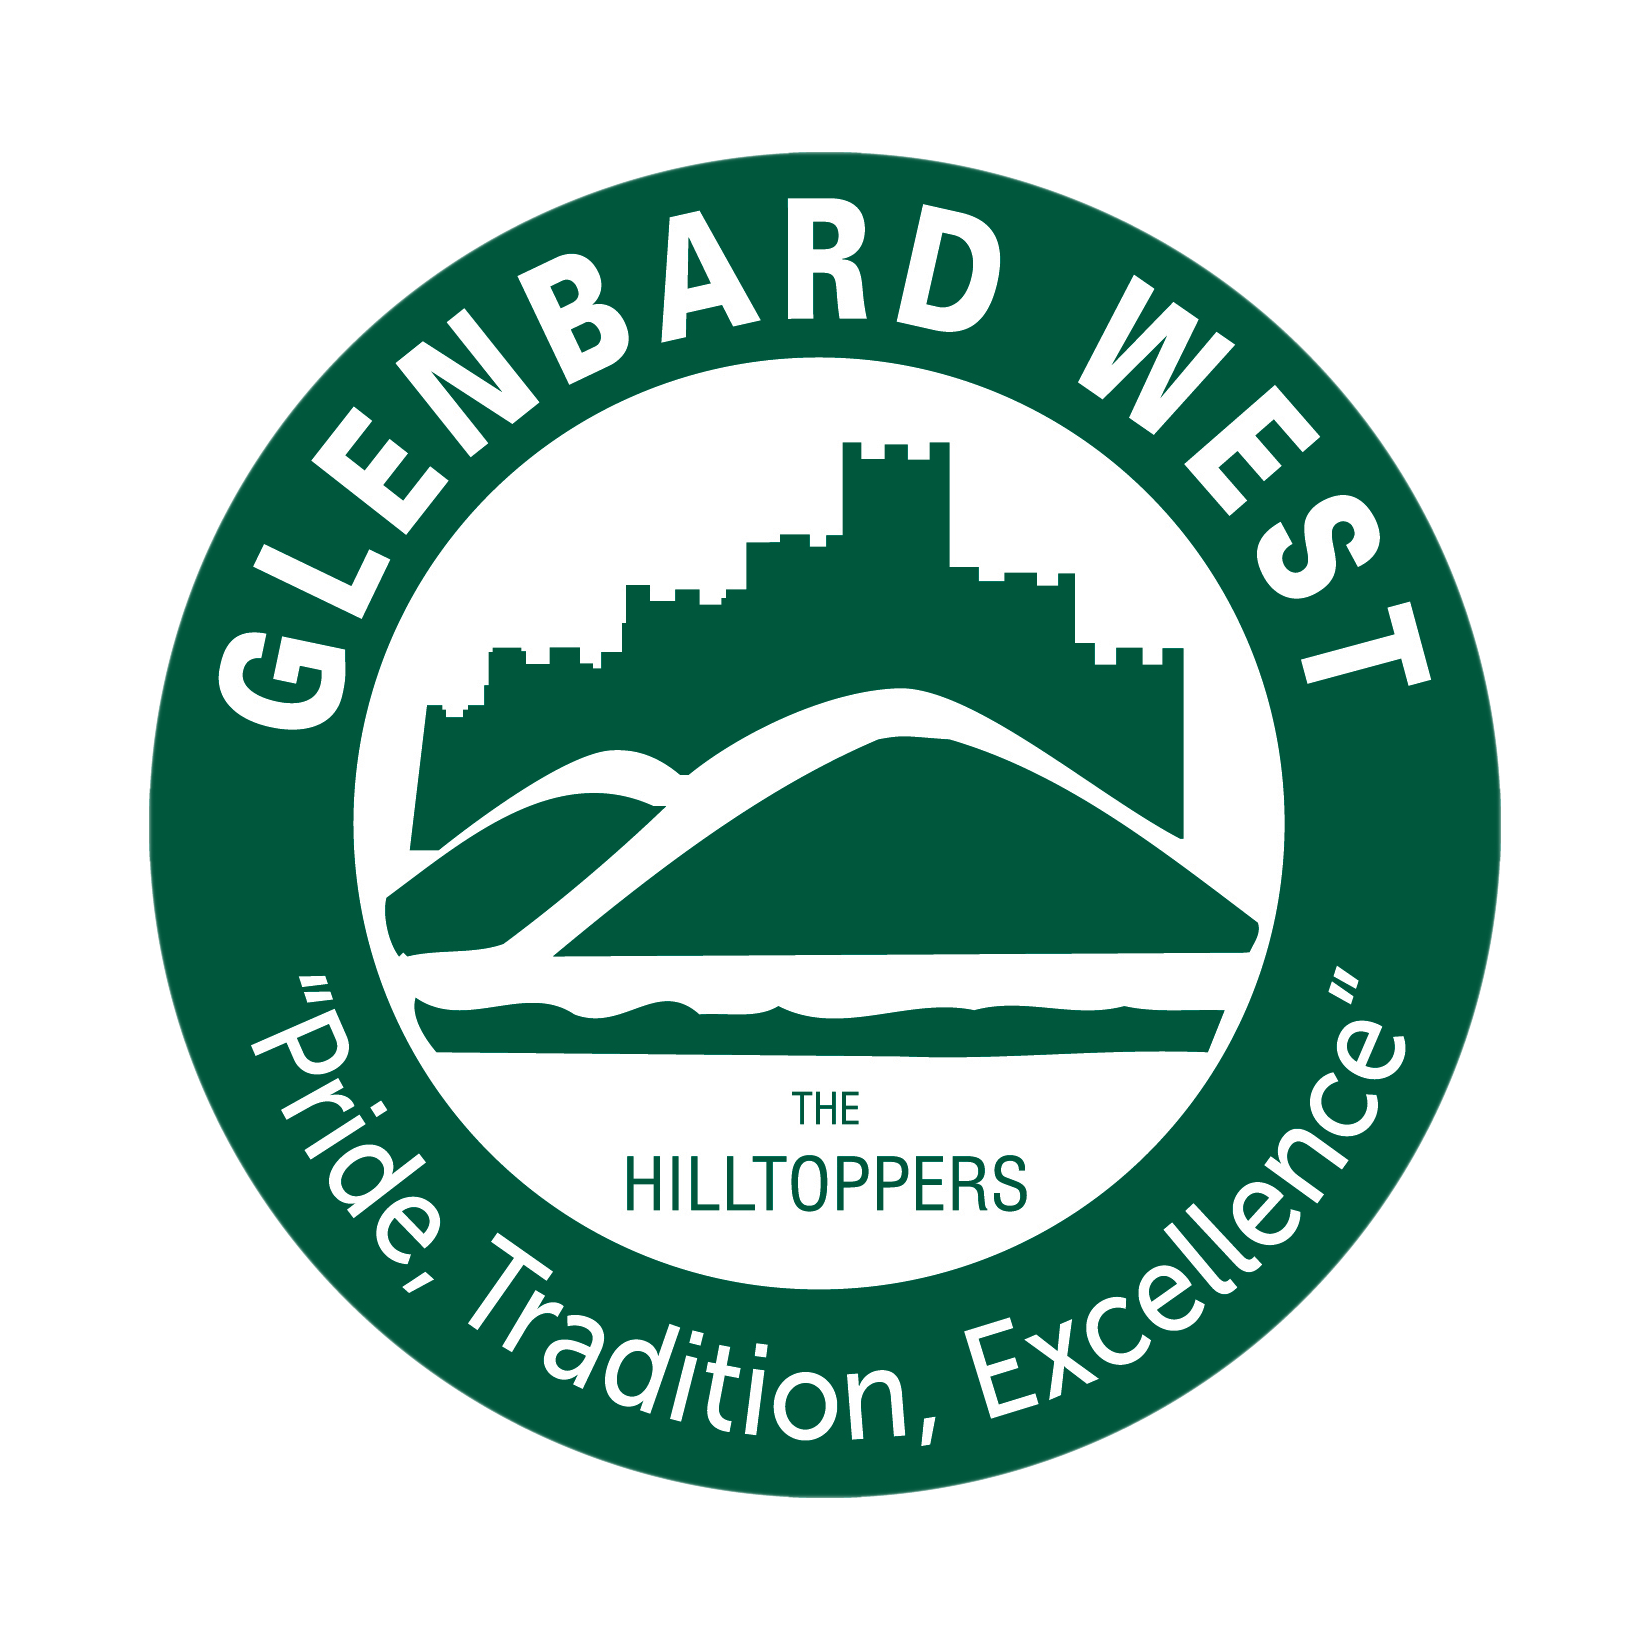 Glenbard West High School